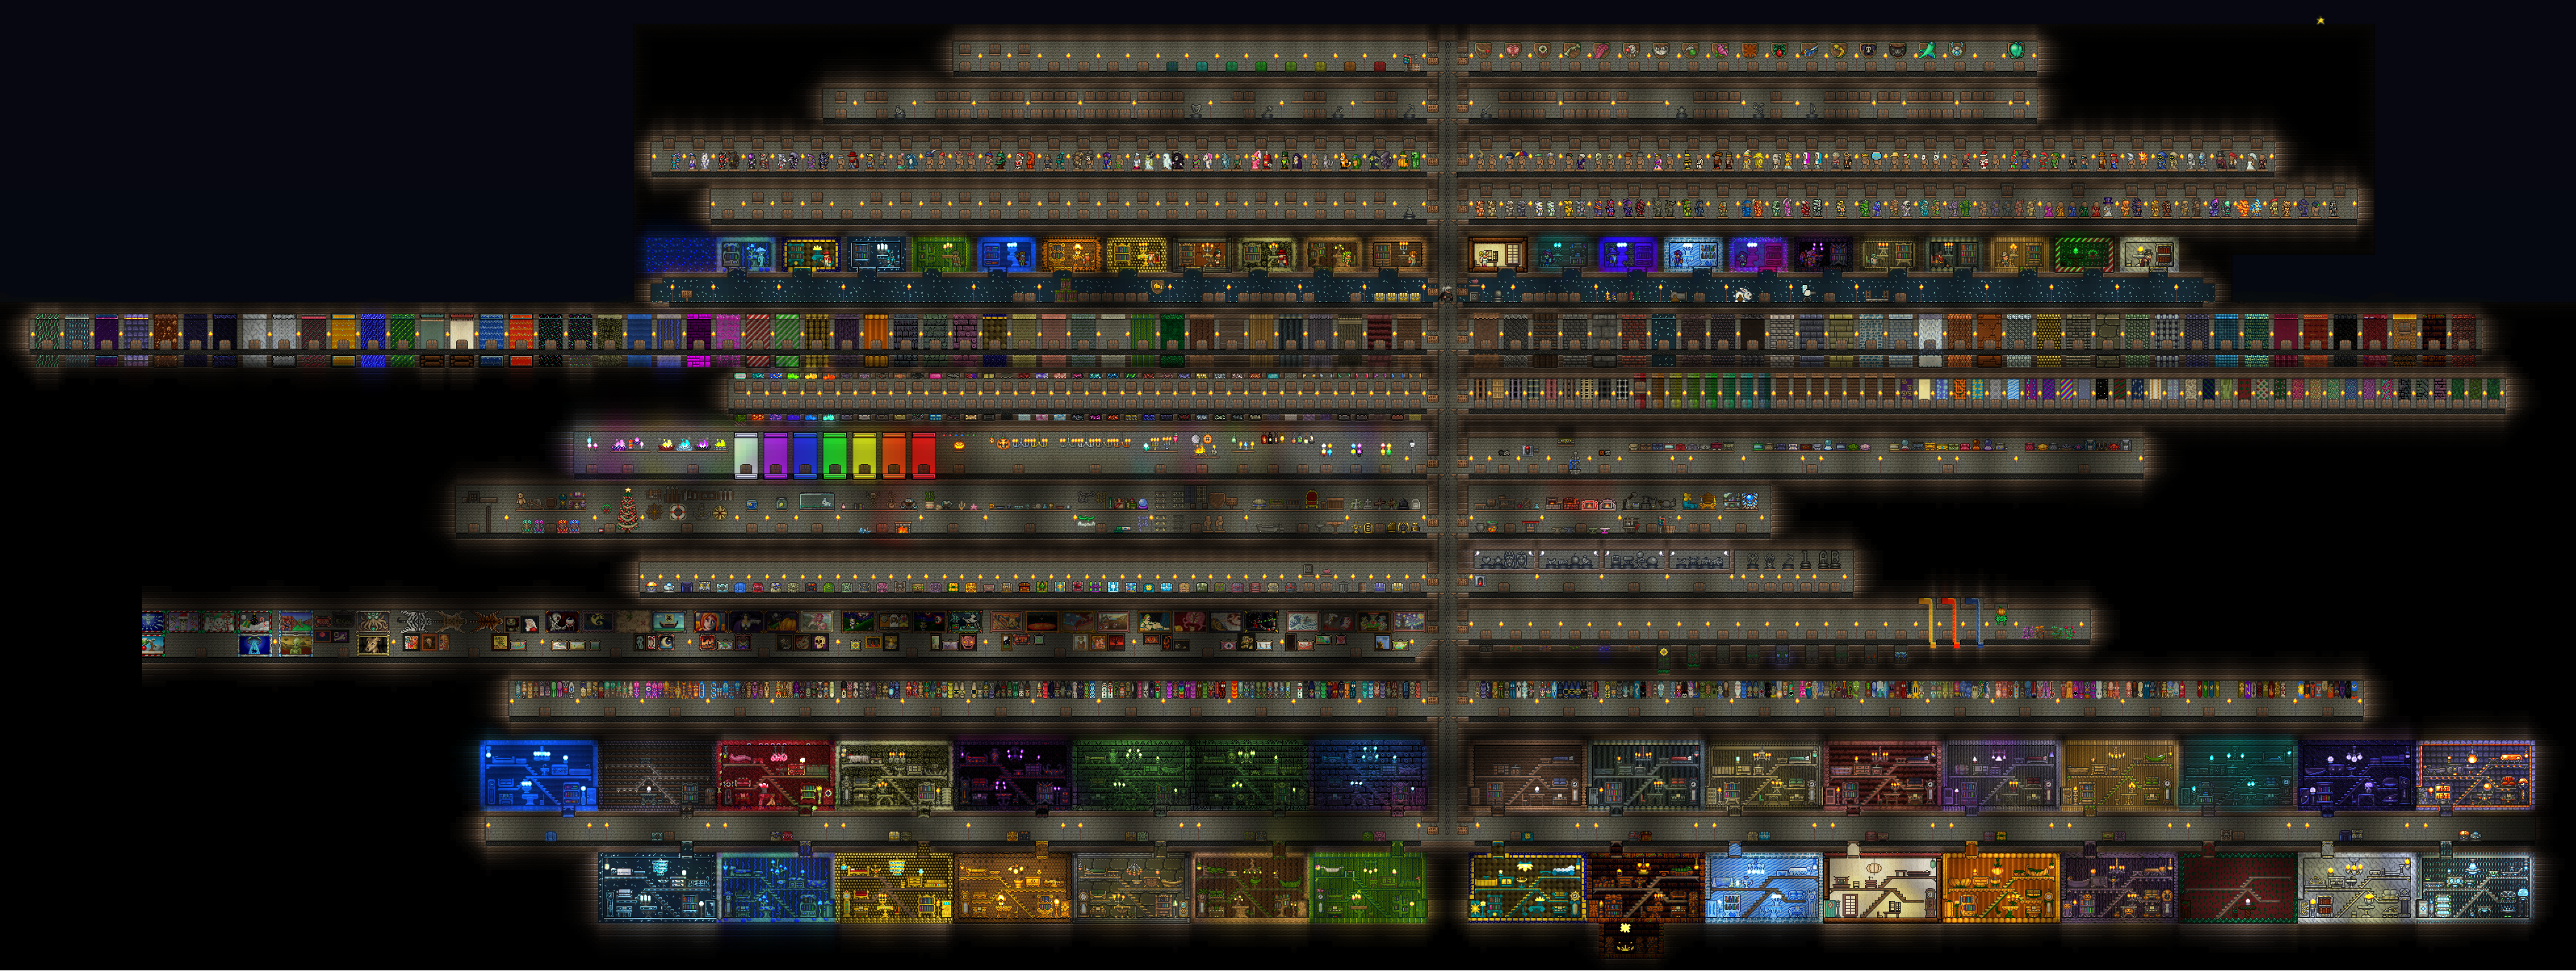 Files builders workshop maps projects terraria curseforge terraria curseforge gumiabroncs Image collections